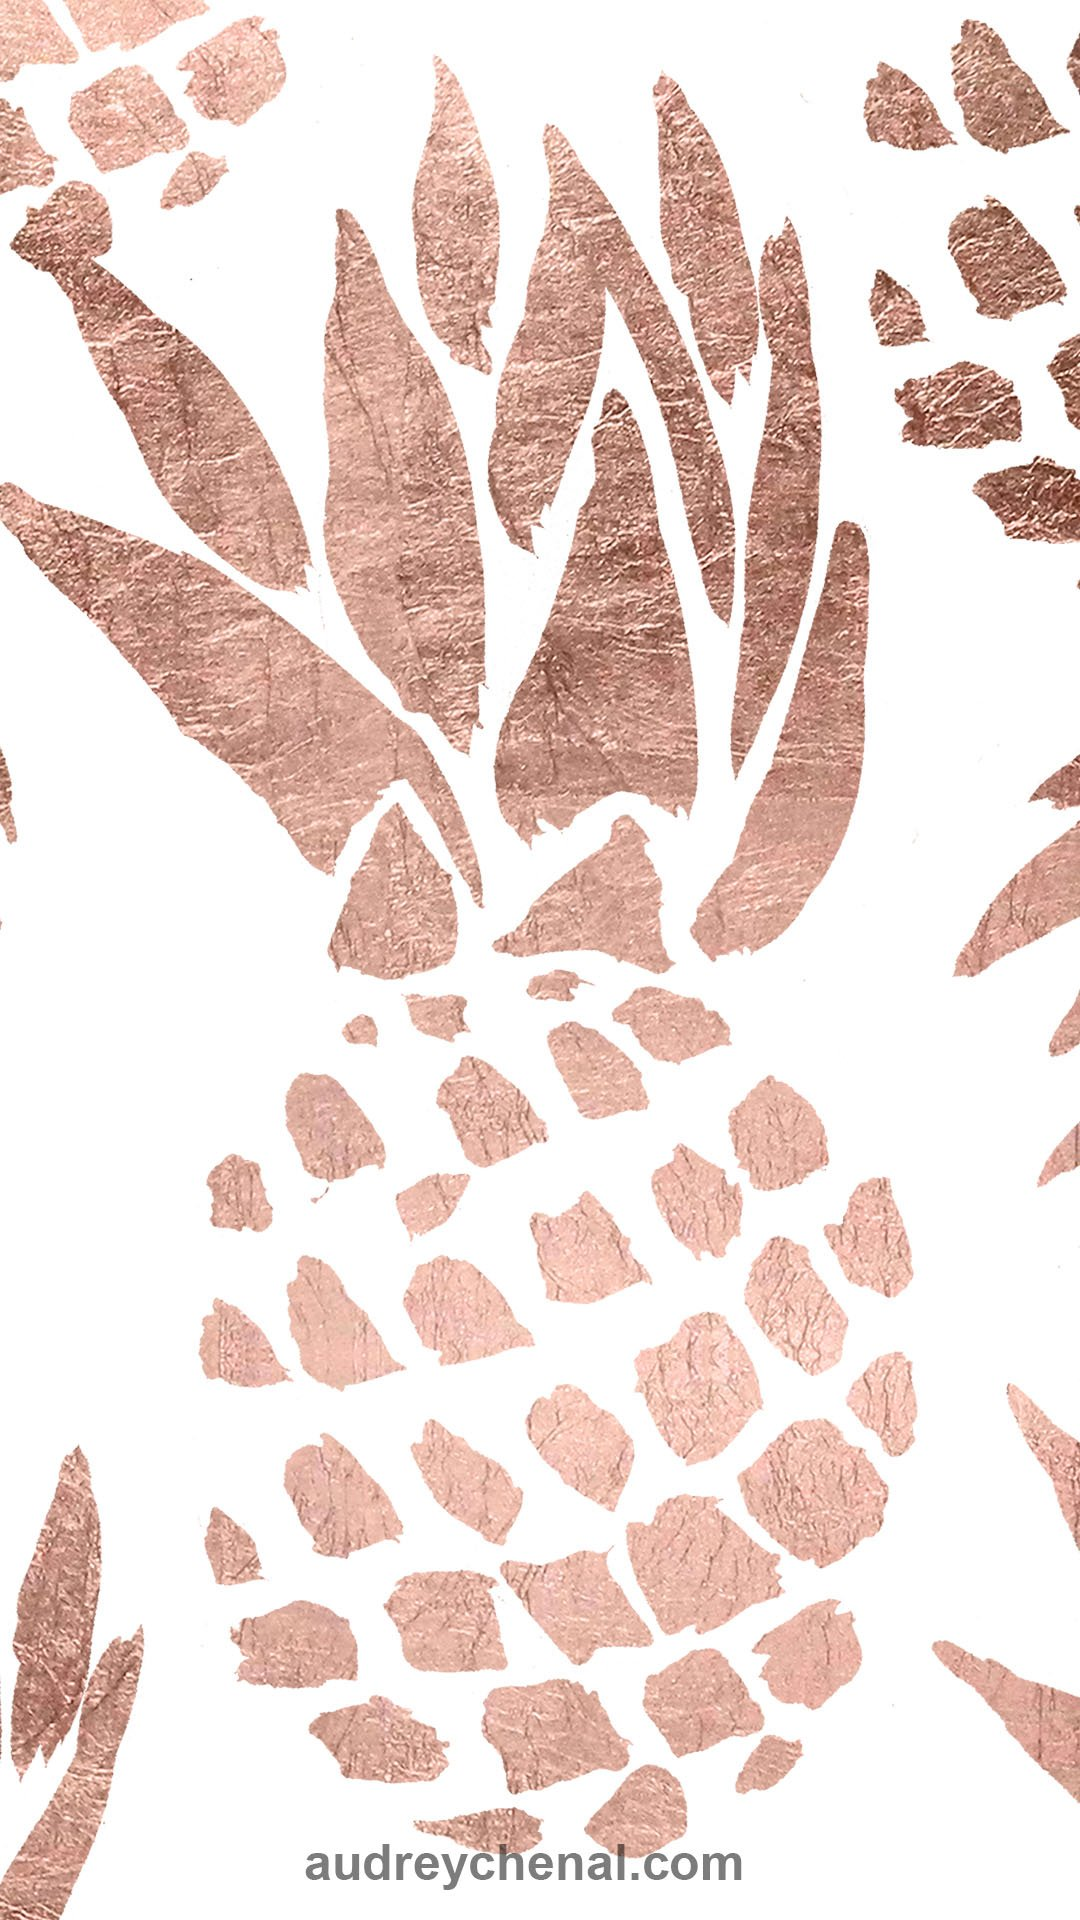 Rose Gold Handdrawn Pineapple Free Wallpaper By Audrey Chenal Audrey Chenal